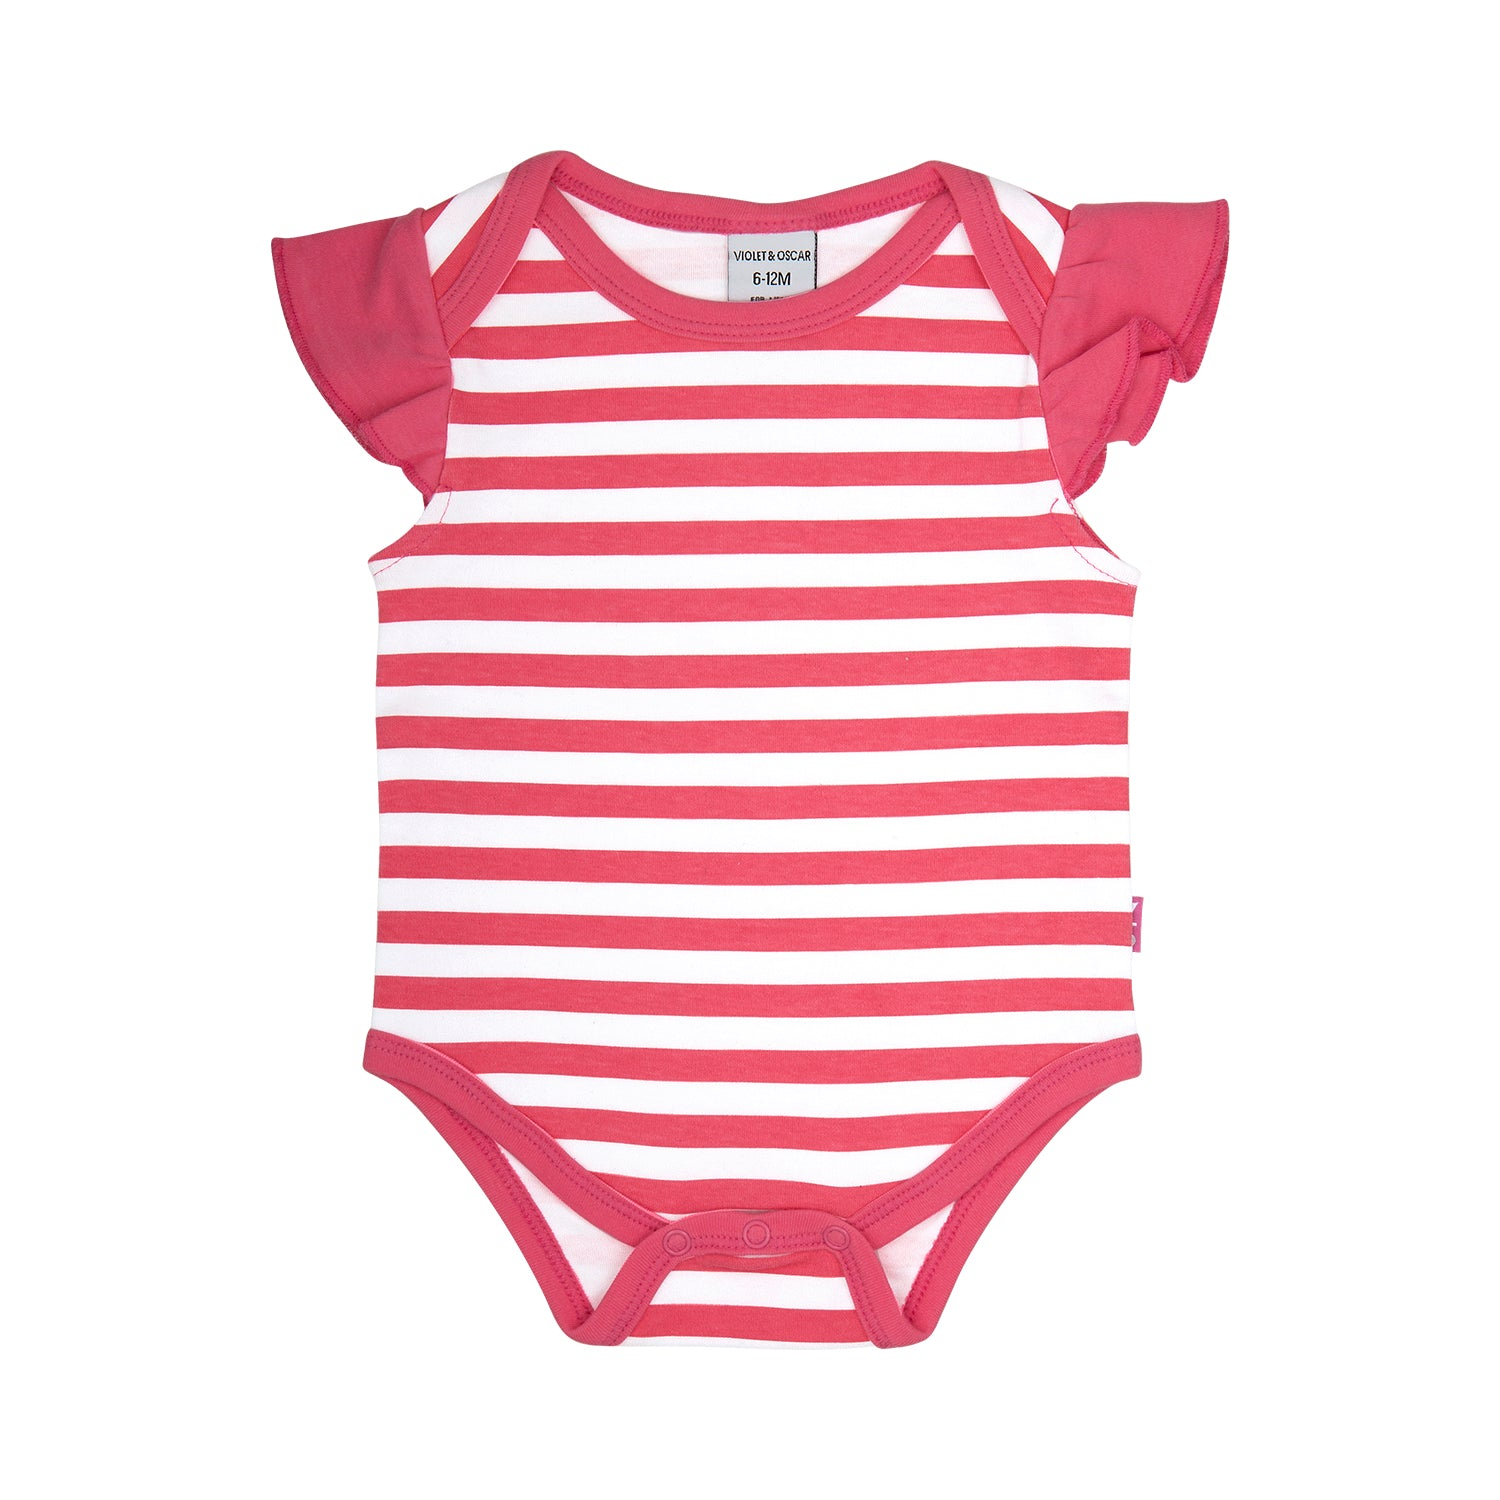 front side of a 100% cotton pink and white stripe bodysuit that is short sleeve with ruffles on the shoulder. Pink trim around the neck and leg openings.